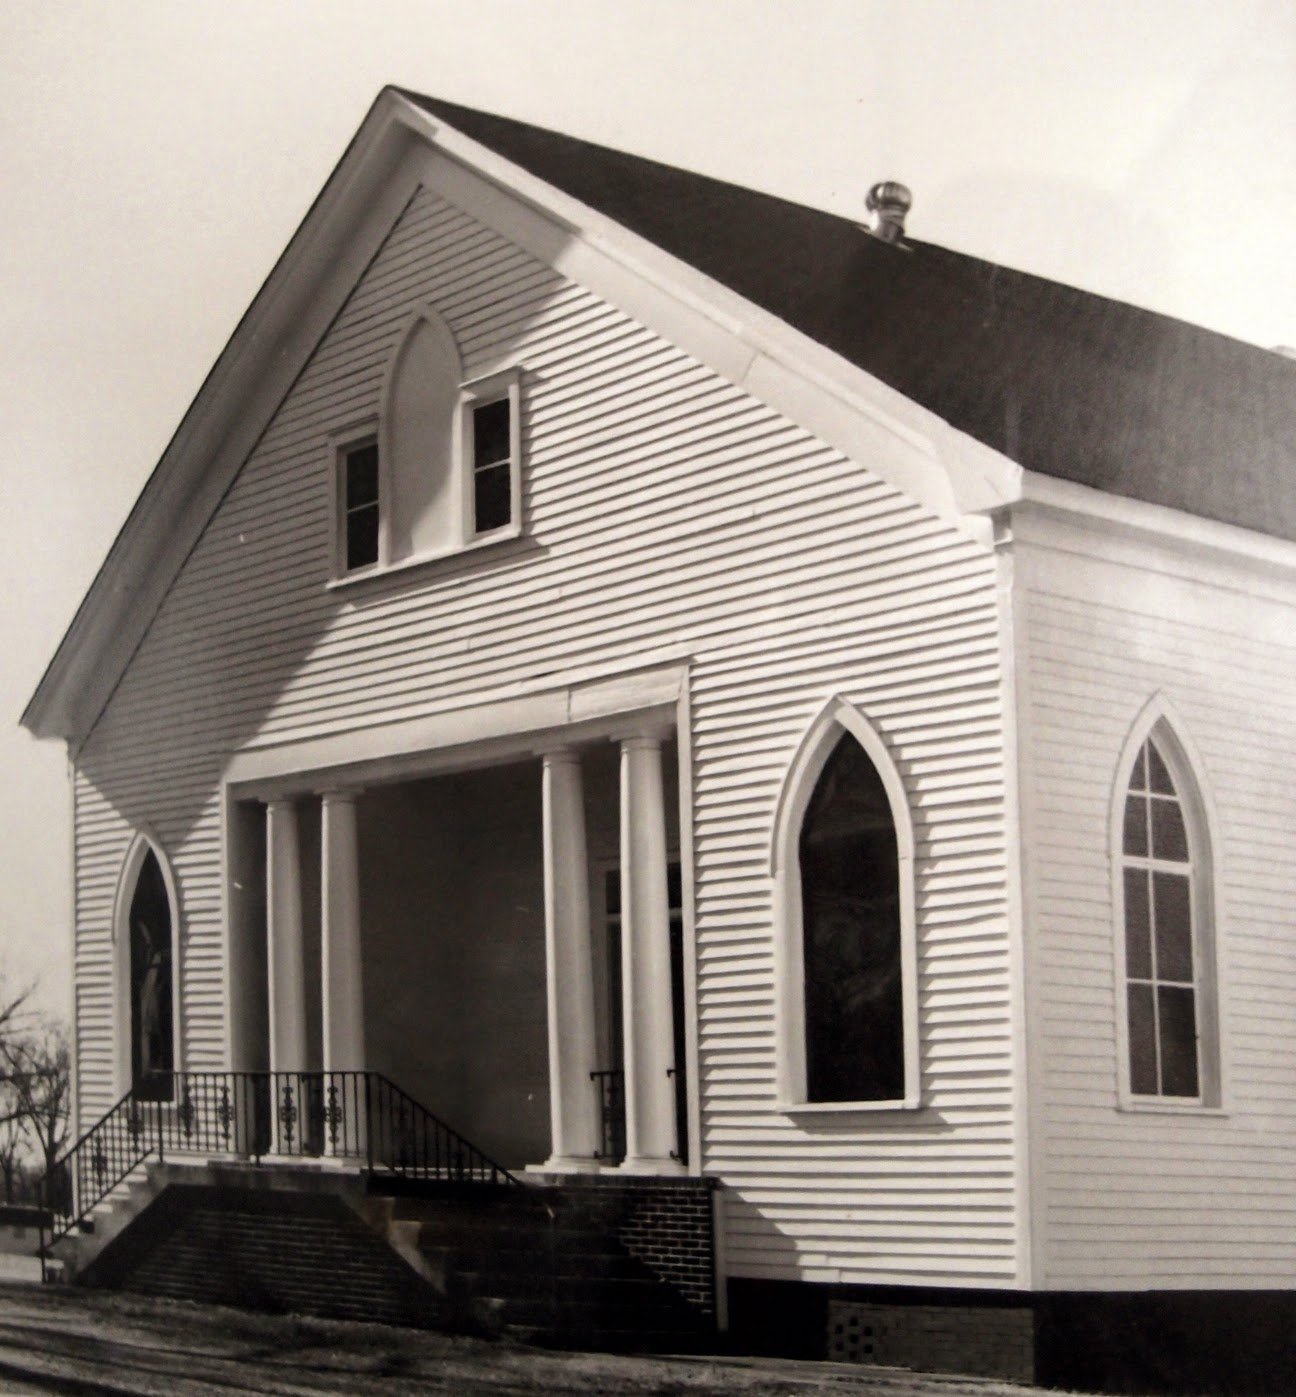 Tennessee haywood county stanton - Historic Photo Of First Baptist Church Of Stanton Built In 1912